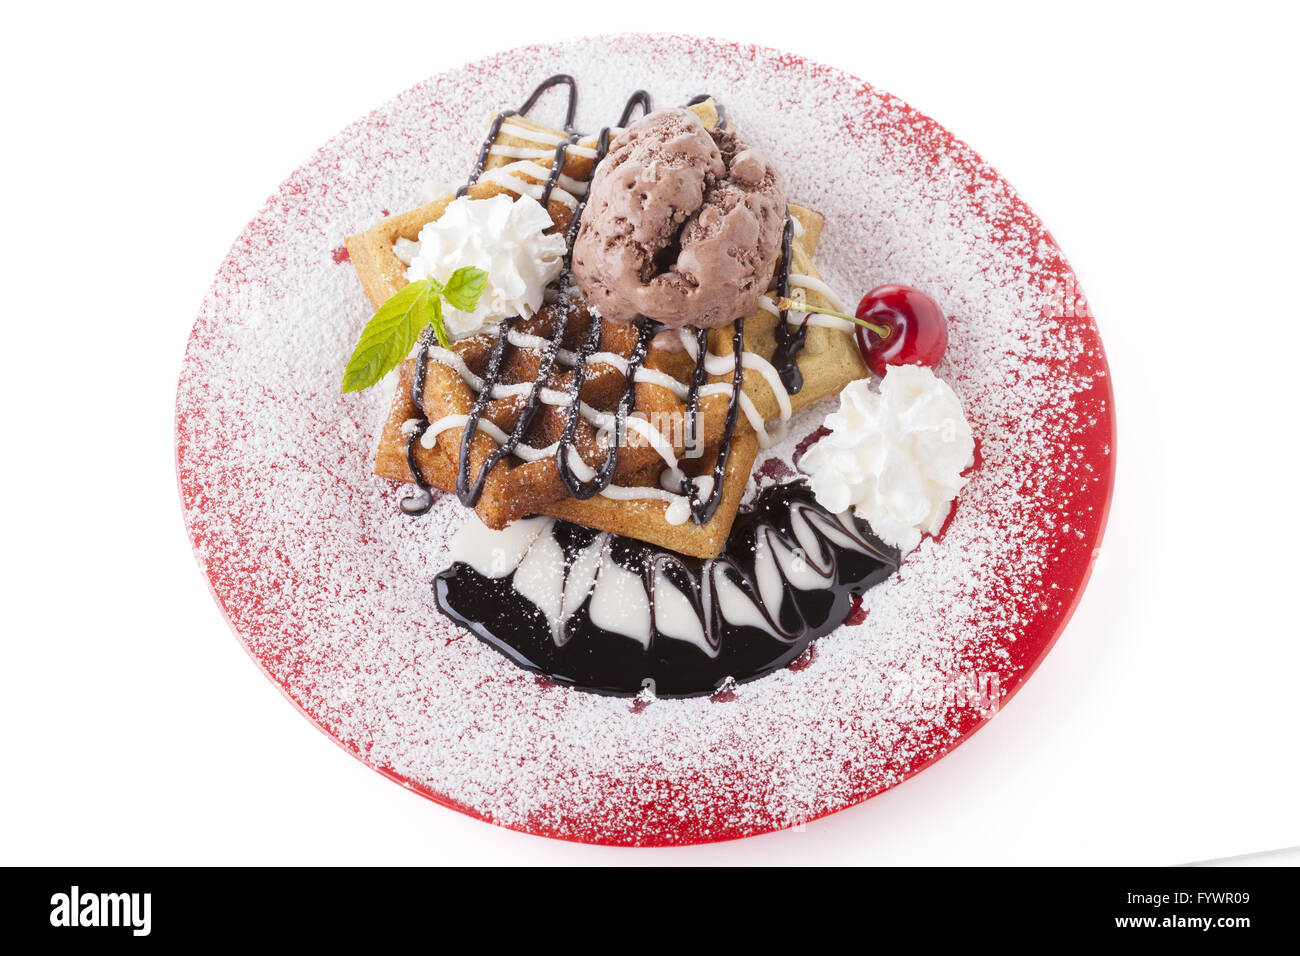 Full Plate - Stock Image